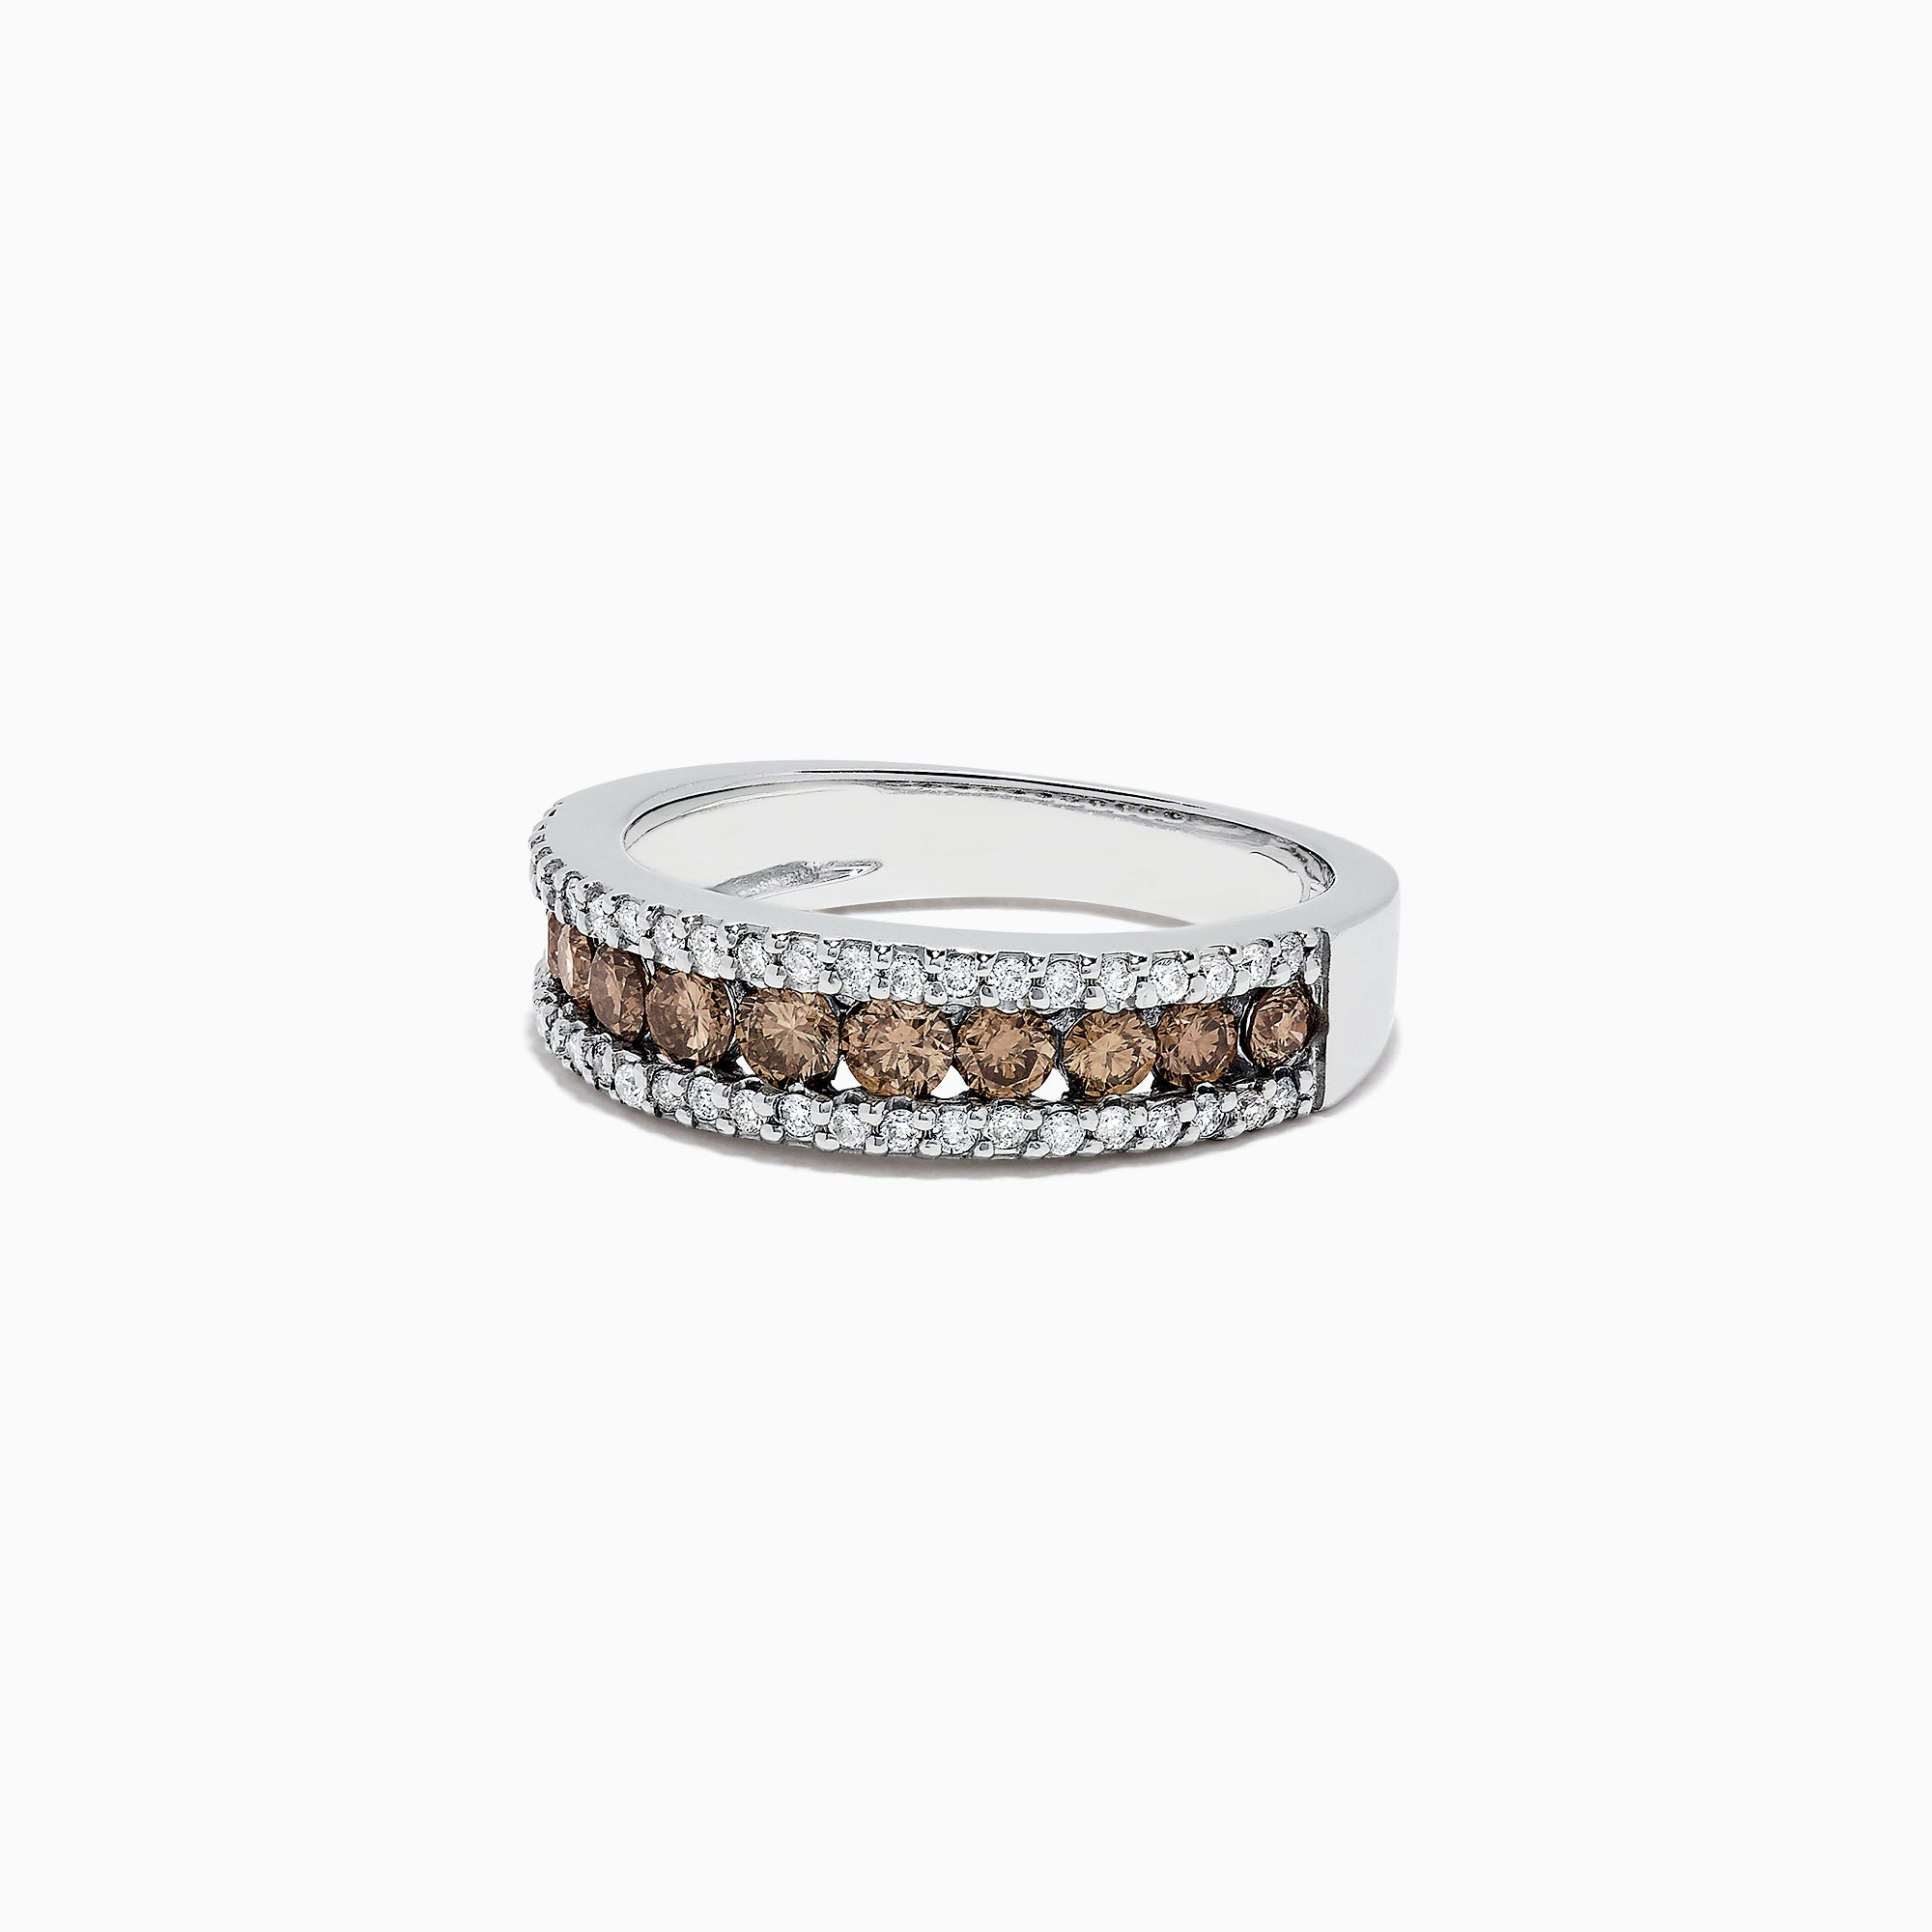 Effy 14K White Gold Espresso and White Diamond Ring, 0.89 TCW